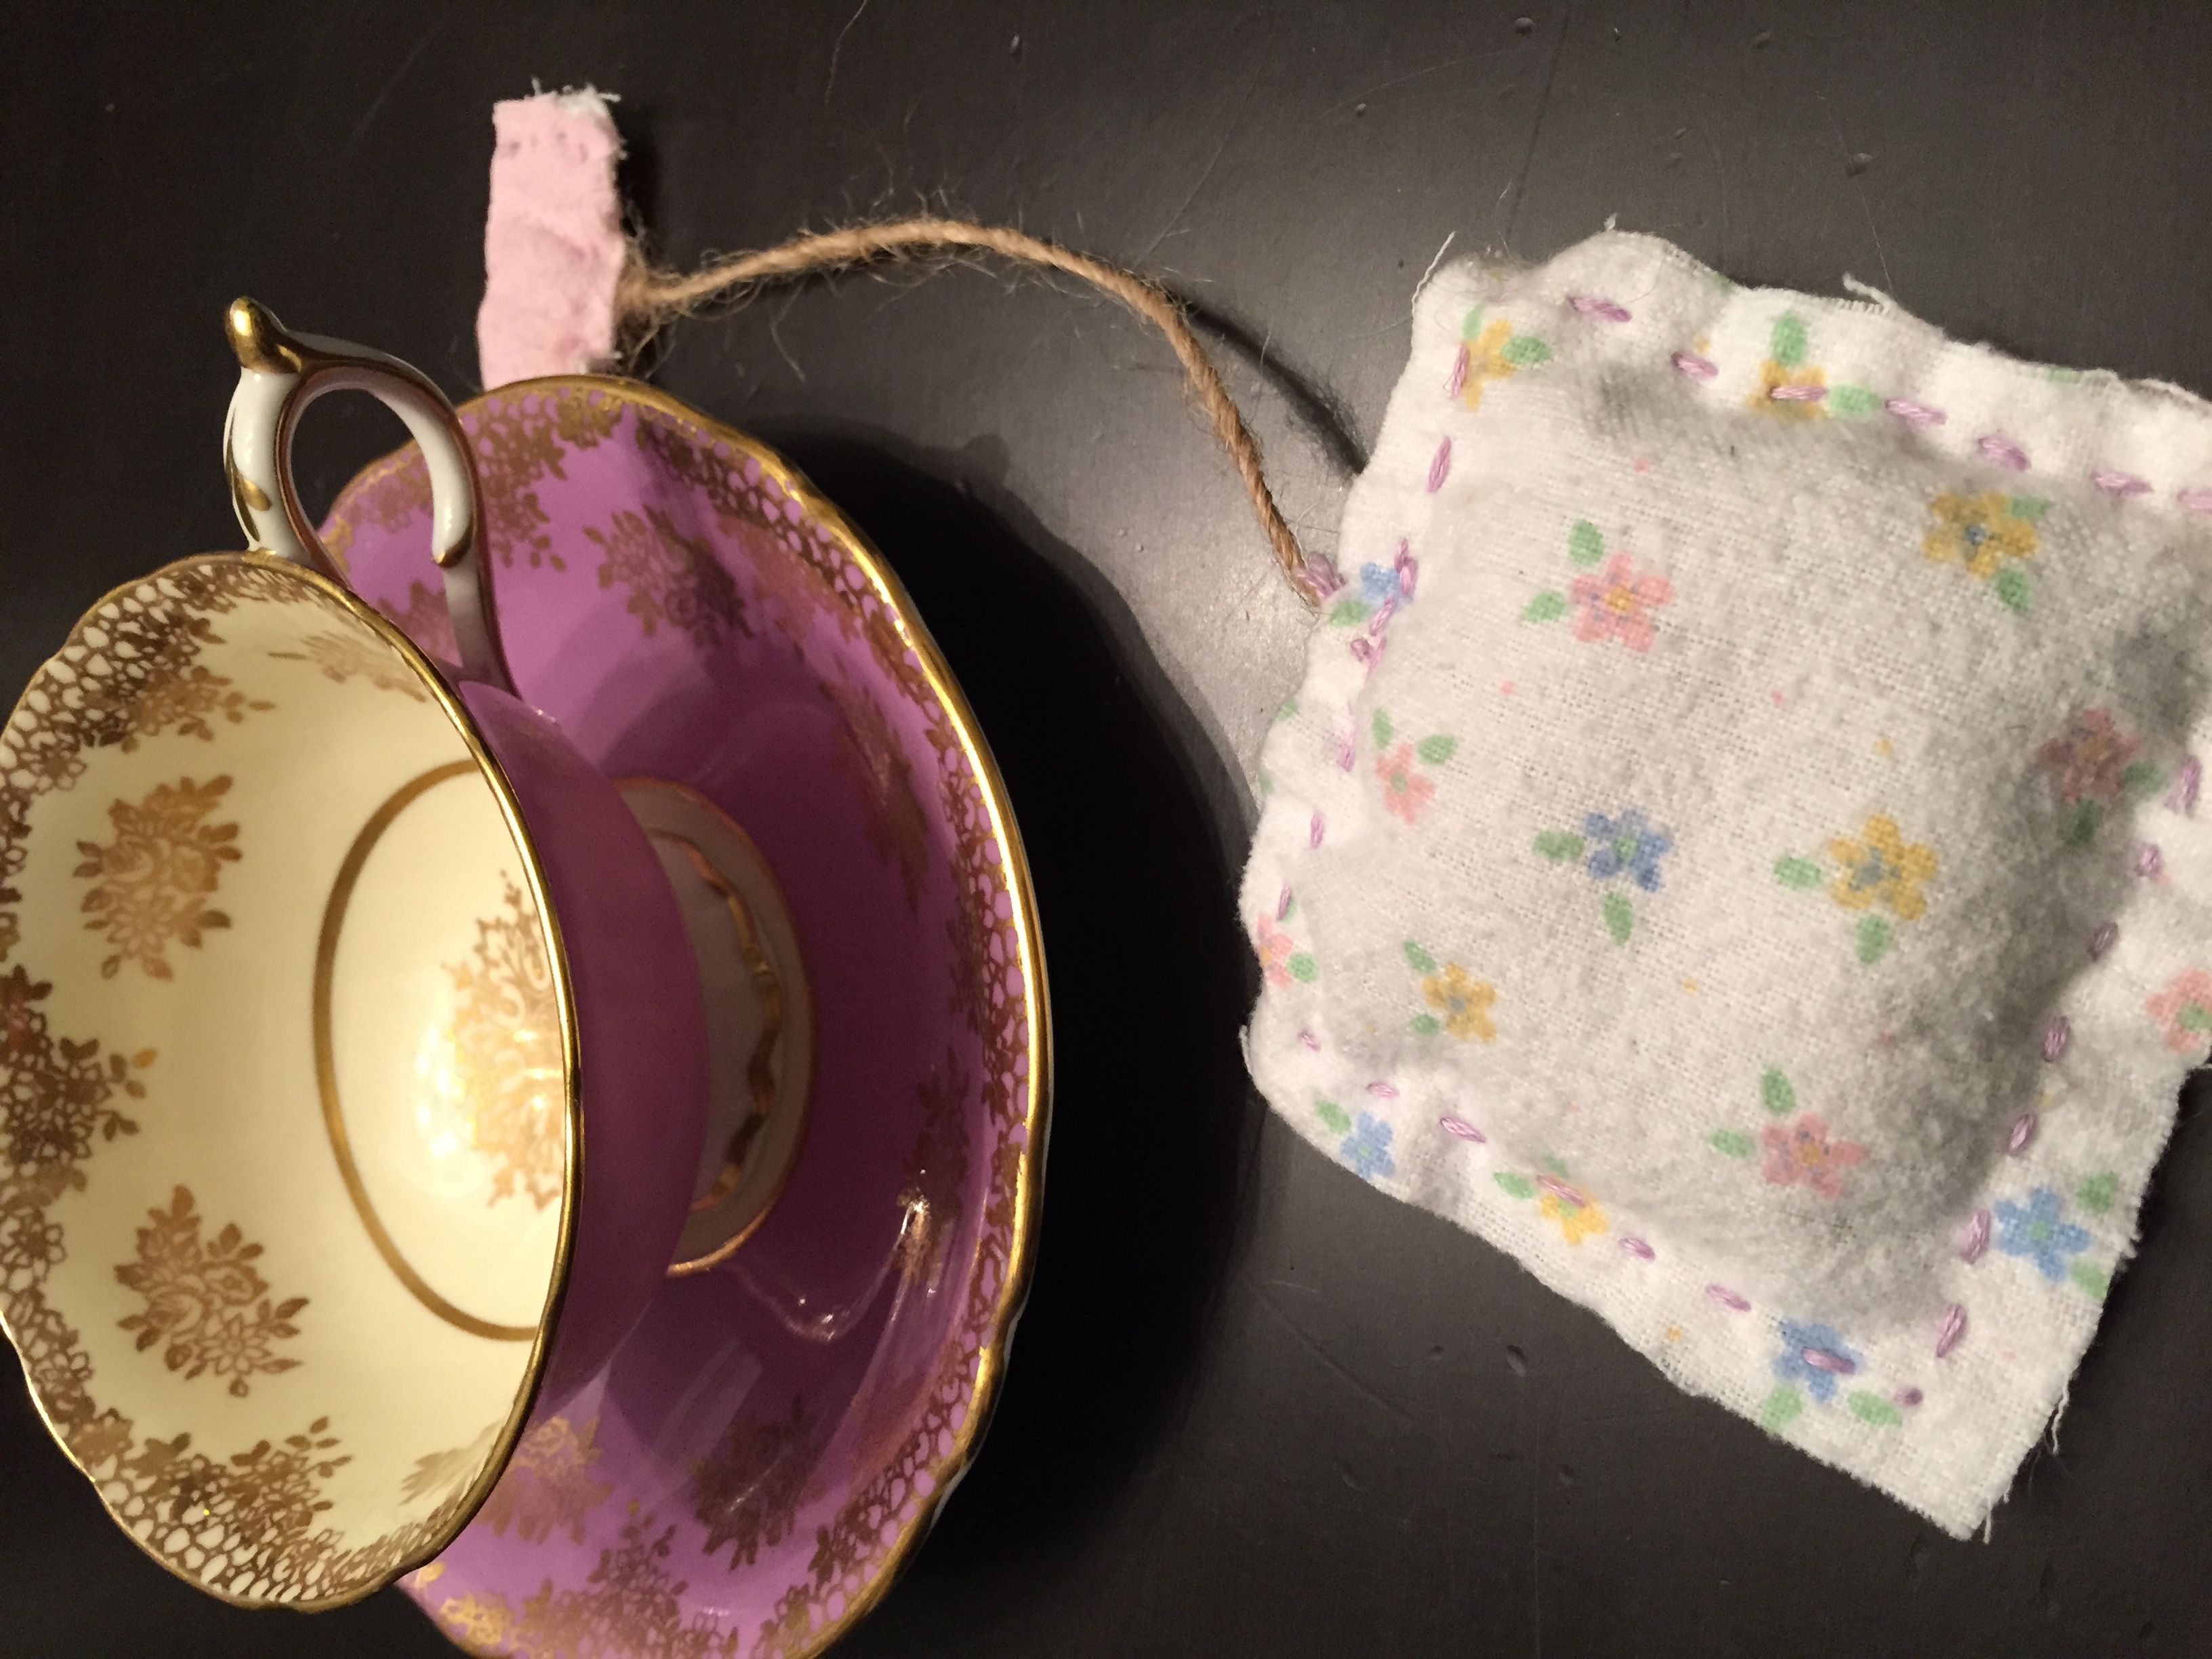 This is a very special tea cup passed down generations to my daughter, not to be mistaken for ones we bought at Good Will. The cloth was different on each side of the tea bag, filled with lavender and sewn together by family and friends. Thanks Jay-Jay, Raleigh and Heather Dinger! Total cost per goodie bag: $2 for cup and saucer, $1 for lavender, cloth, twine and embroidery thread = $3 each for 12 girls - $36.